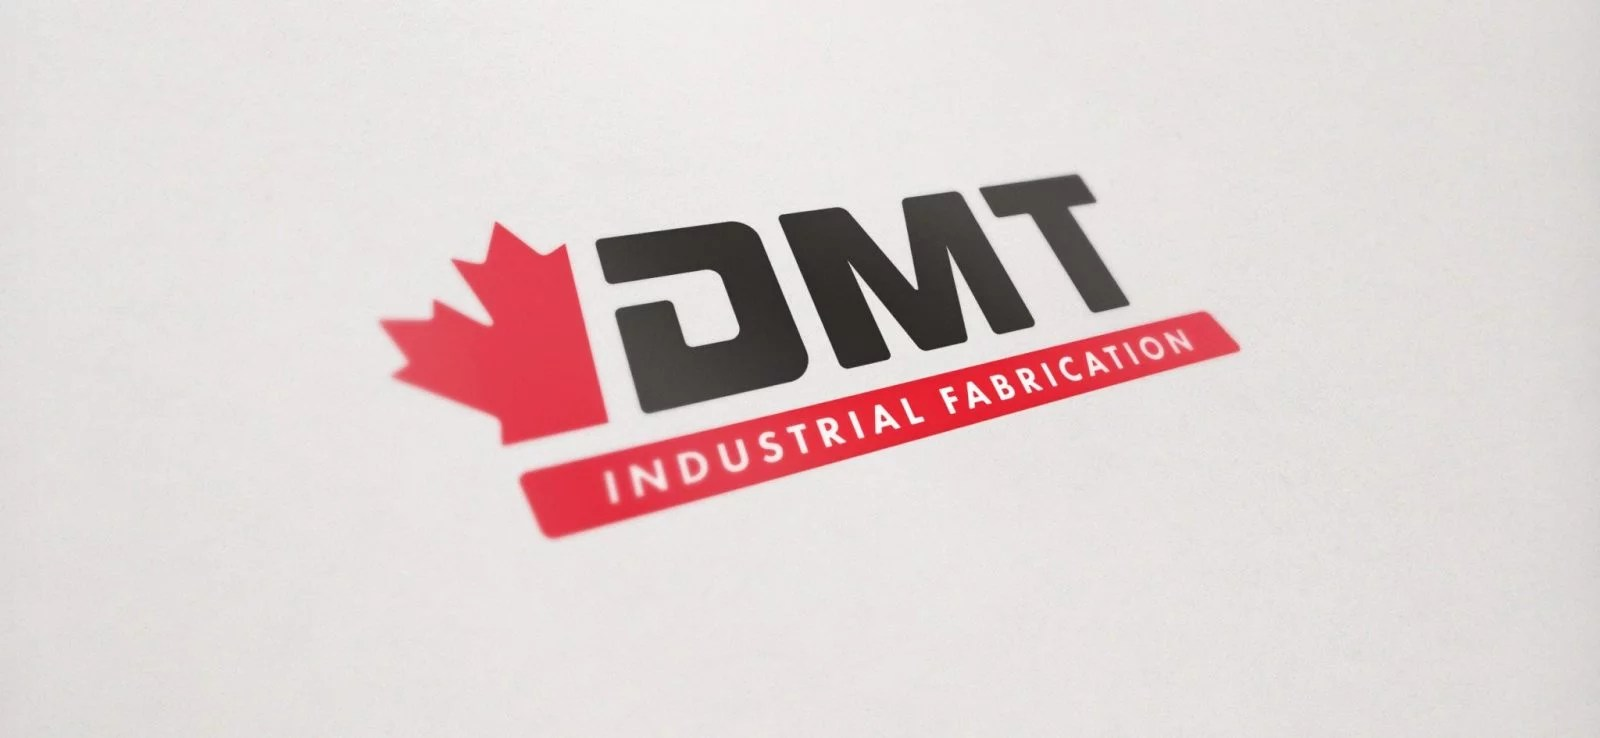 DMT Industrial Fabrication - Logo Design - Lethbridge Alberta